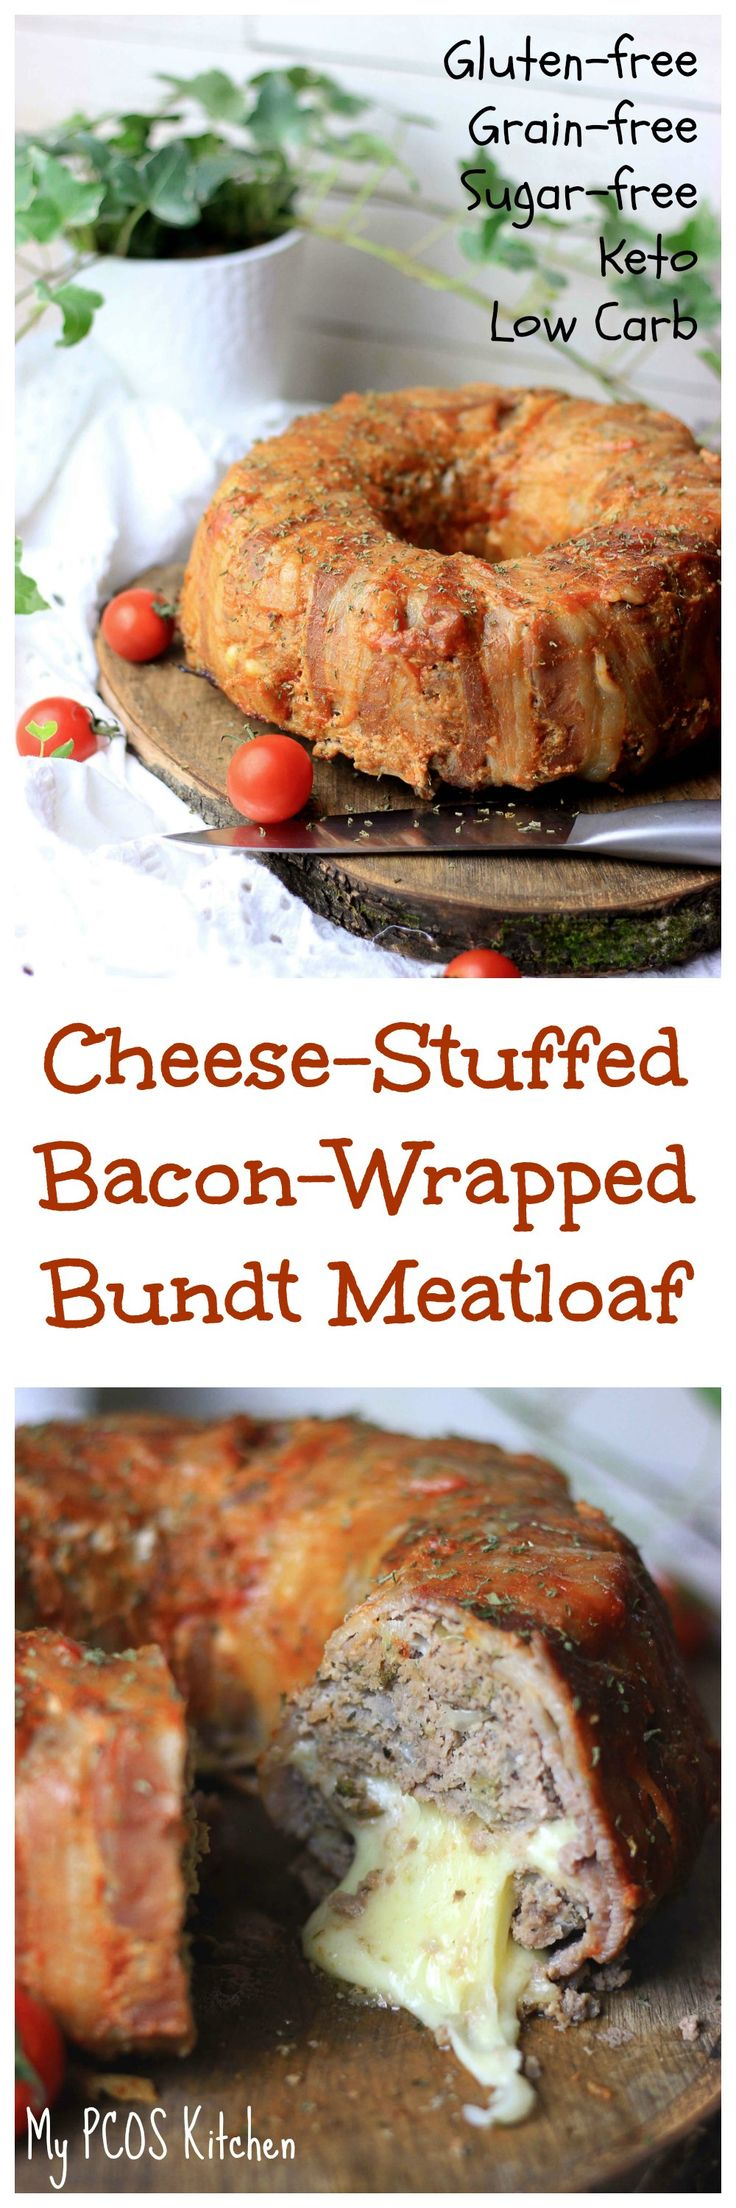 how to cook bacon wrapped meatloaf